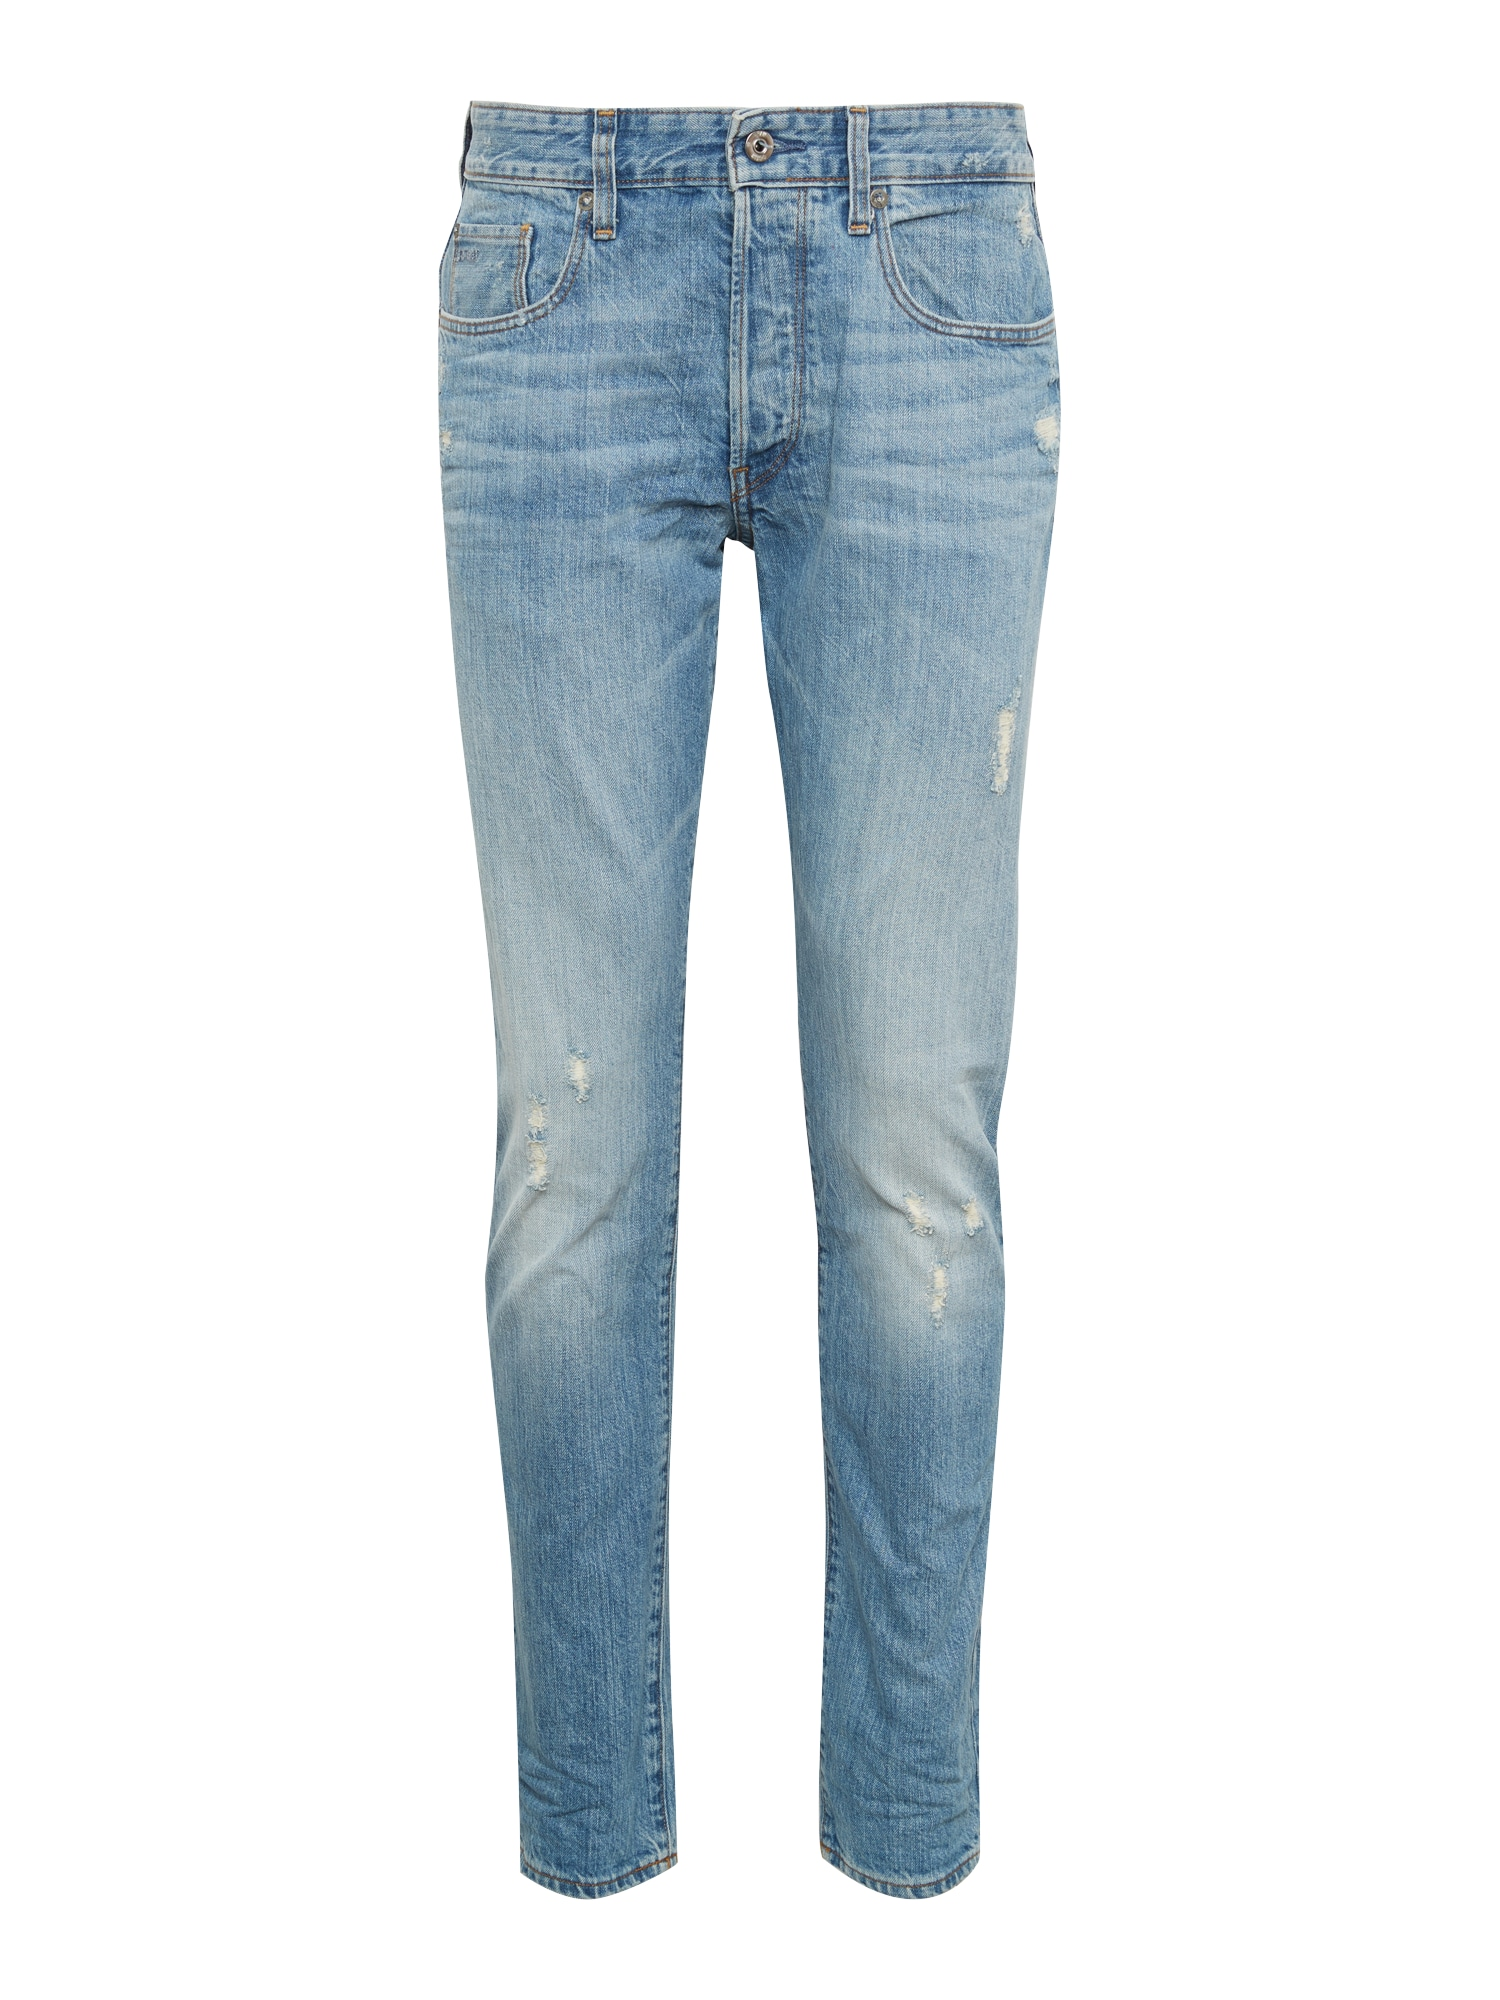 G-STAR RAW Heren Jeans 3301 Tapered blauw denim